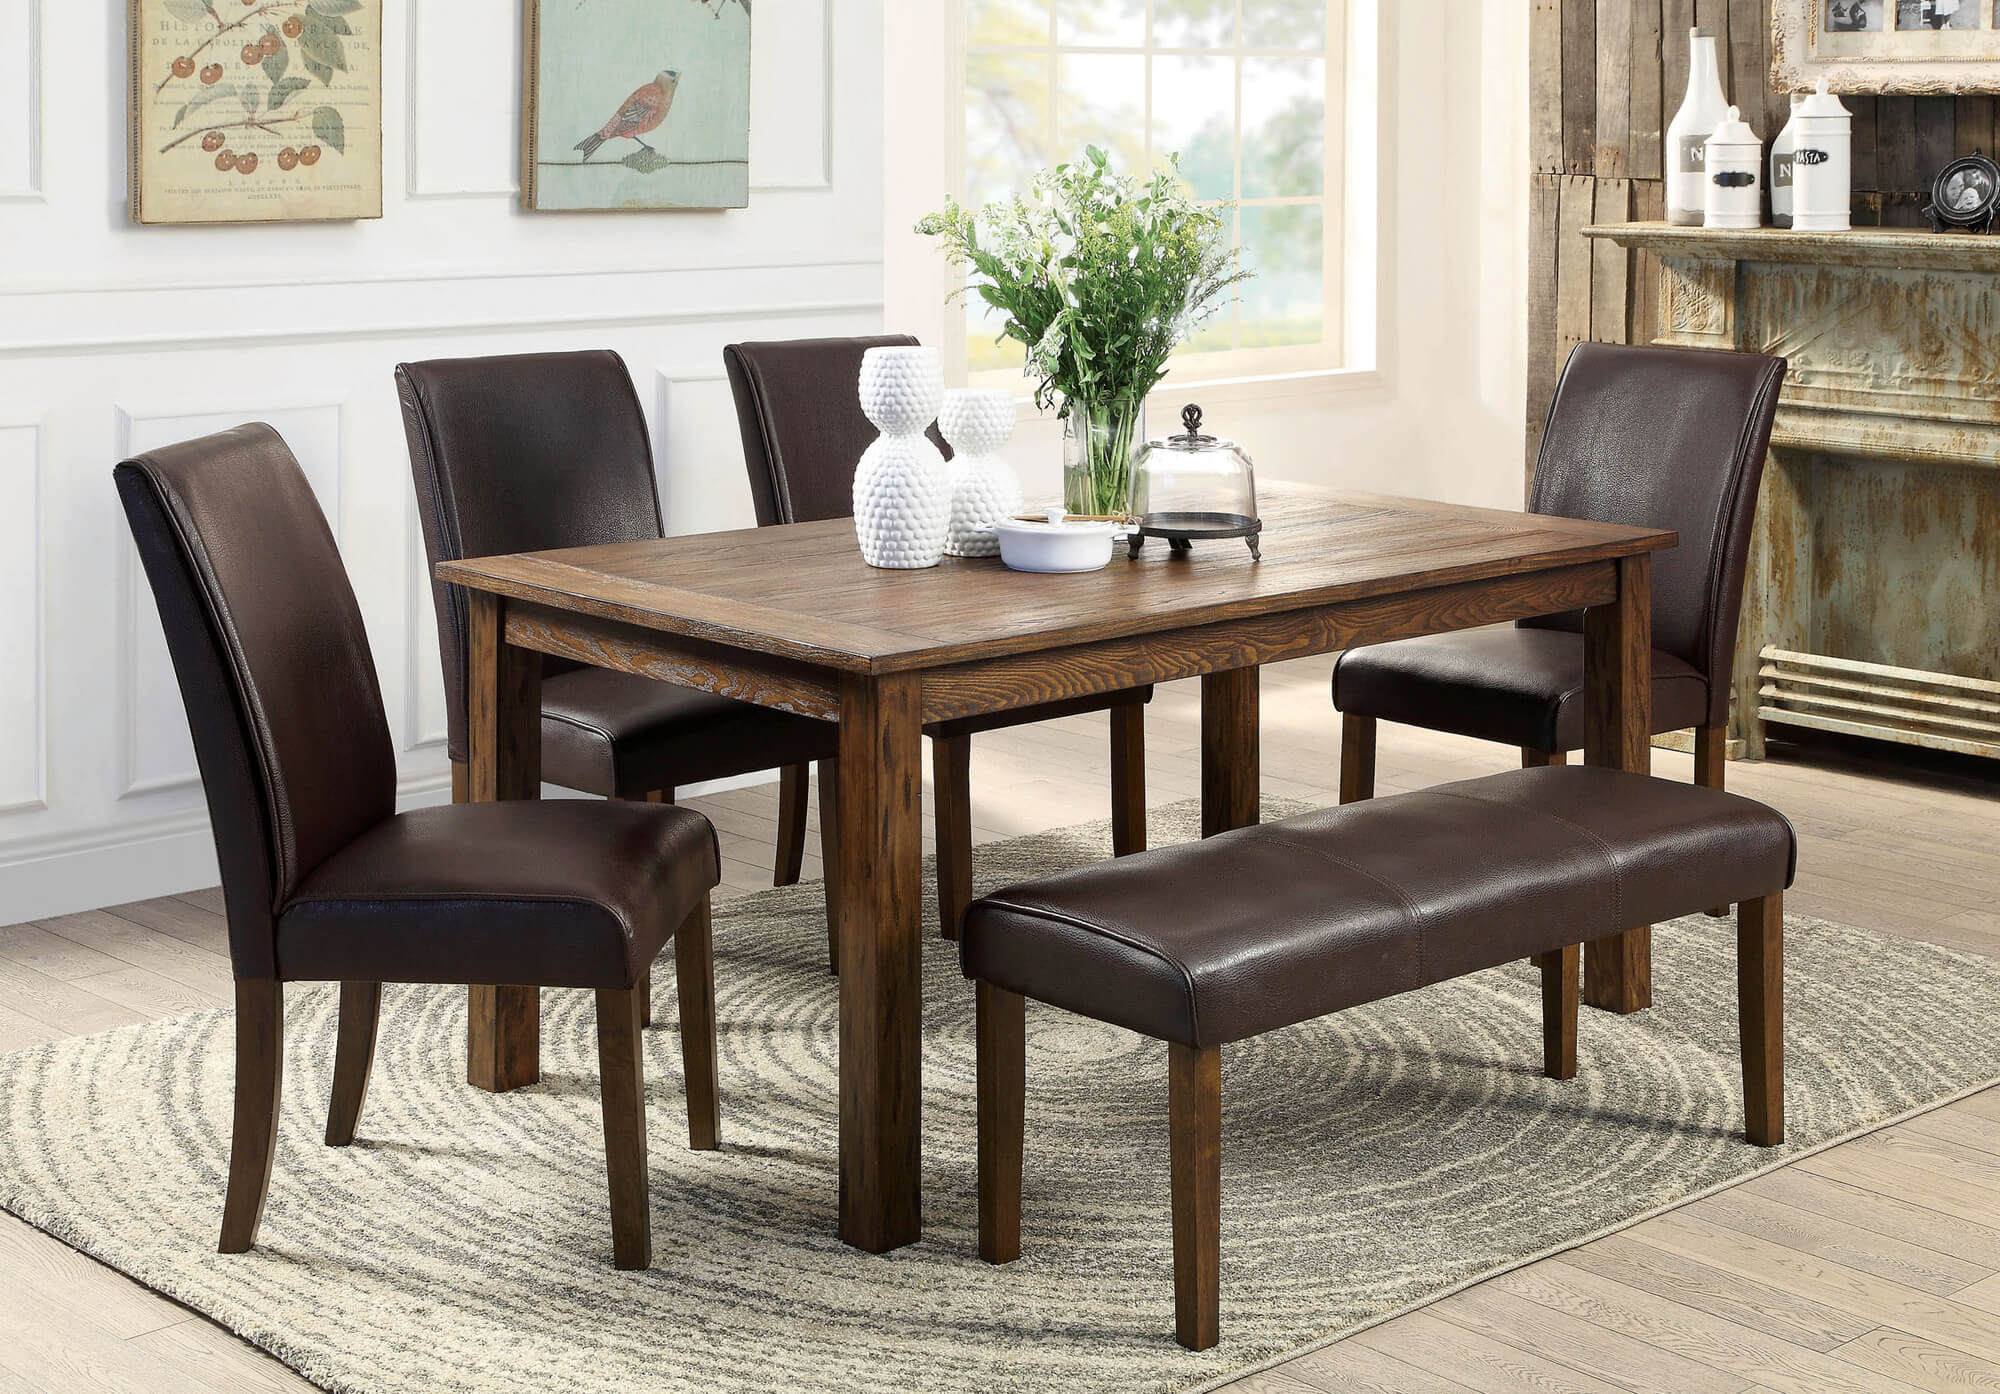 dining room sets bench seating kitchen table and chairs Here s a rustic rectangle dining table with fully cushioned chairs and bench This look works